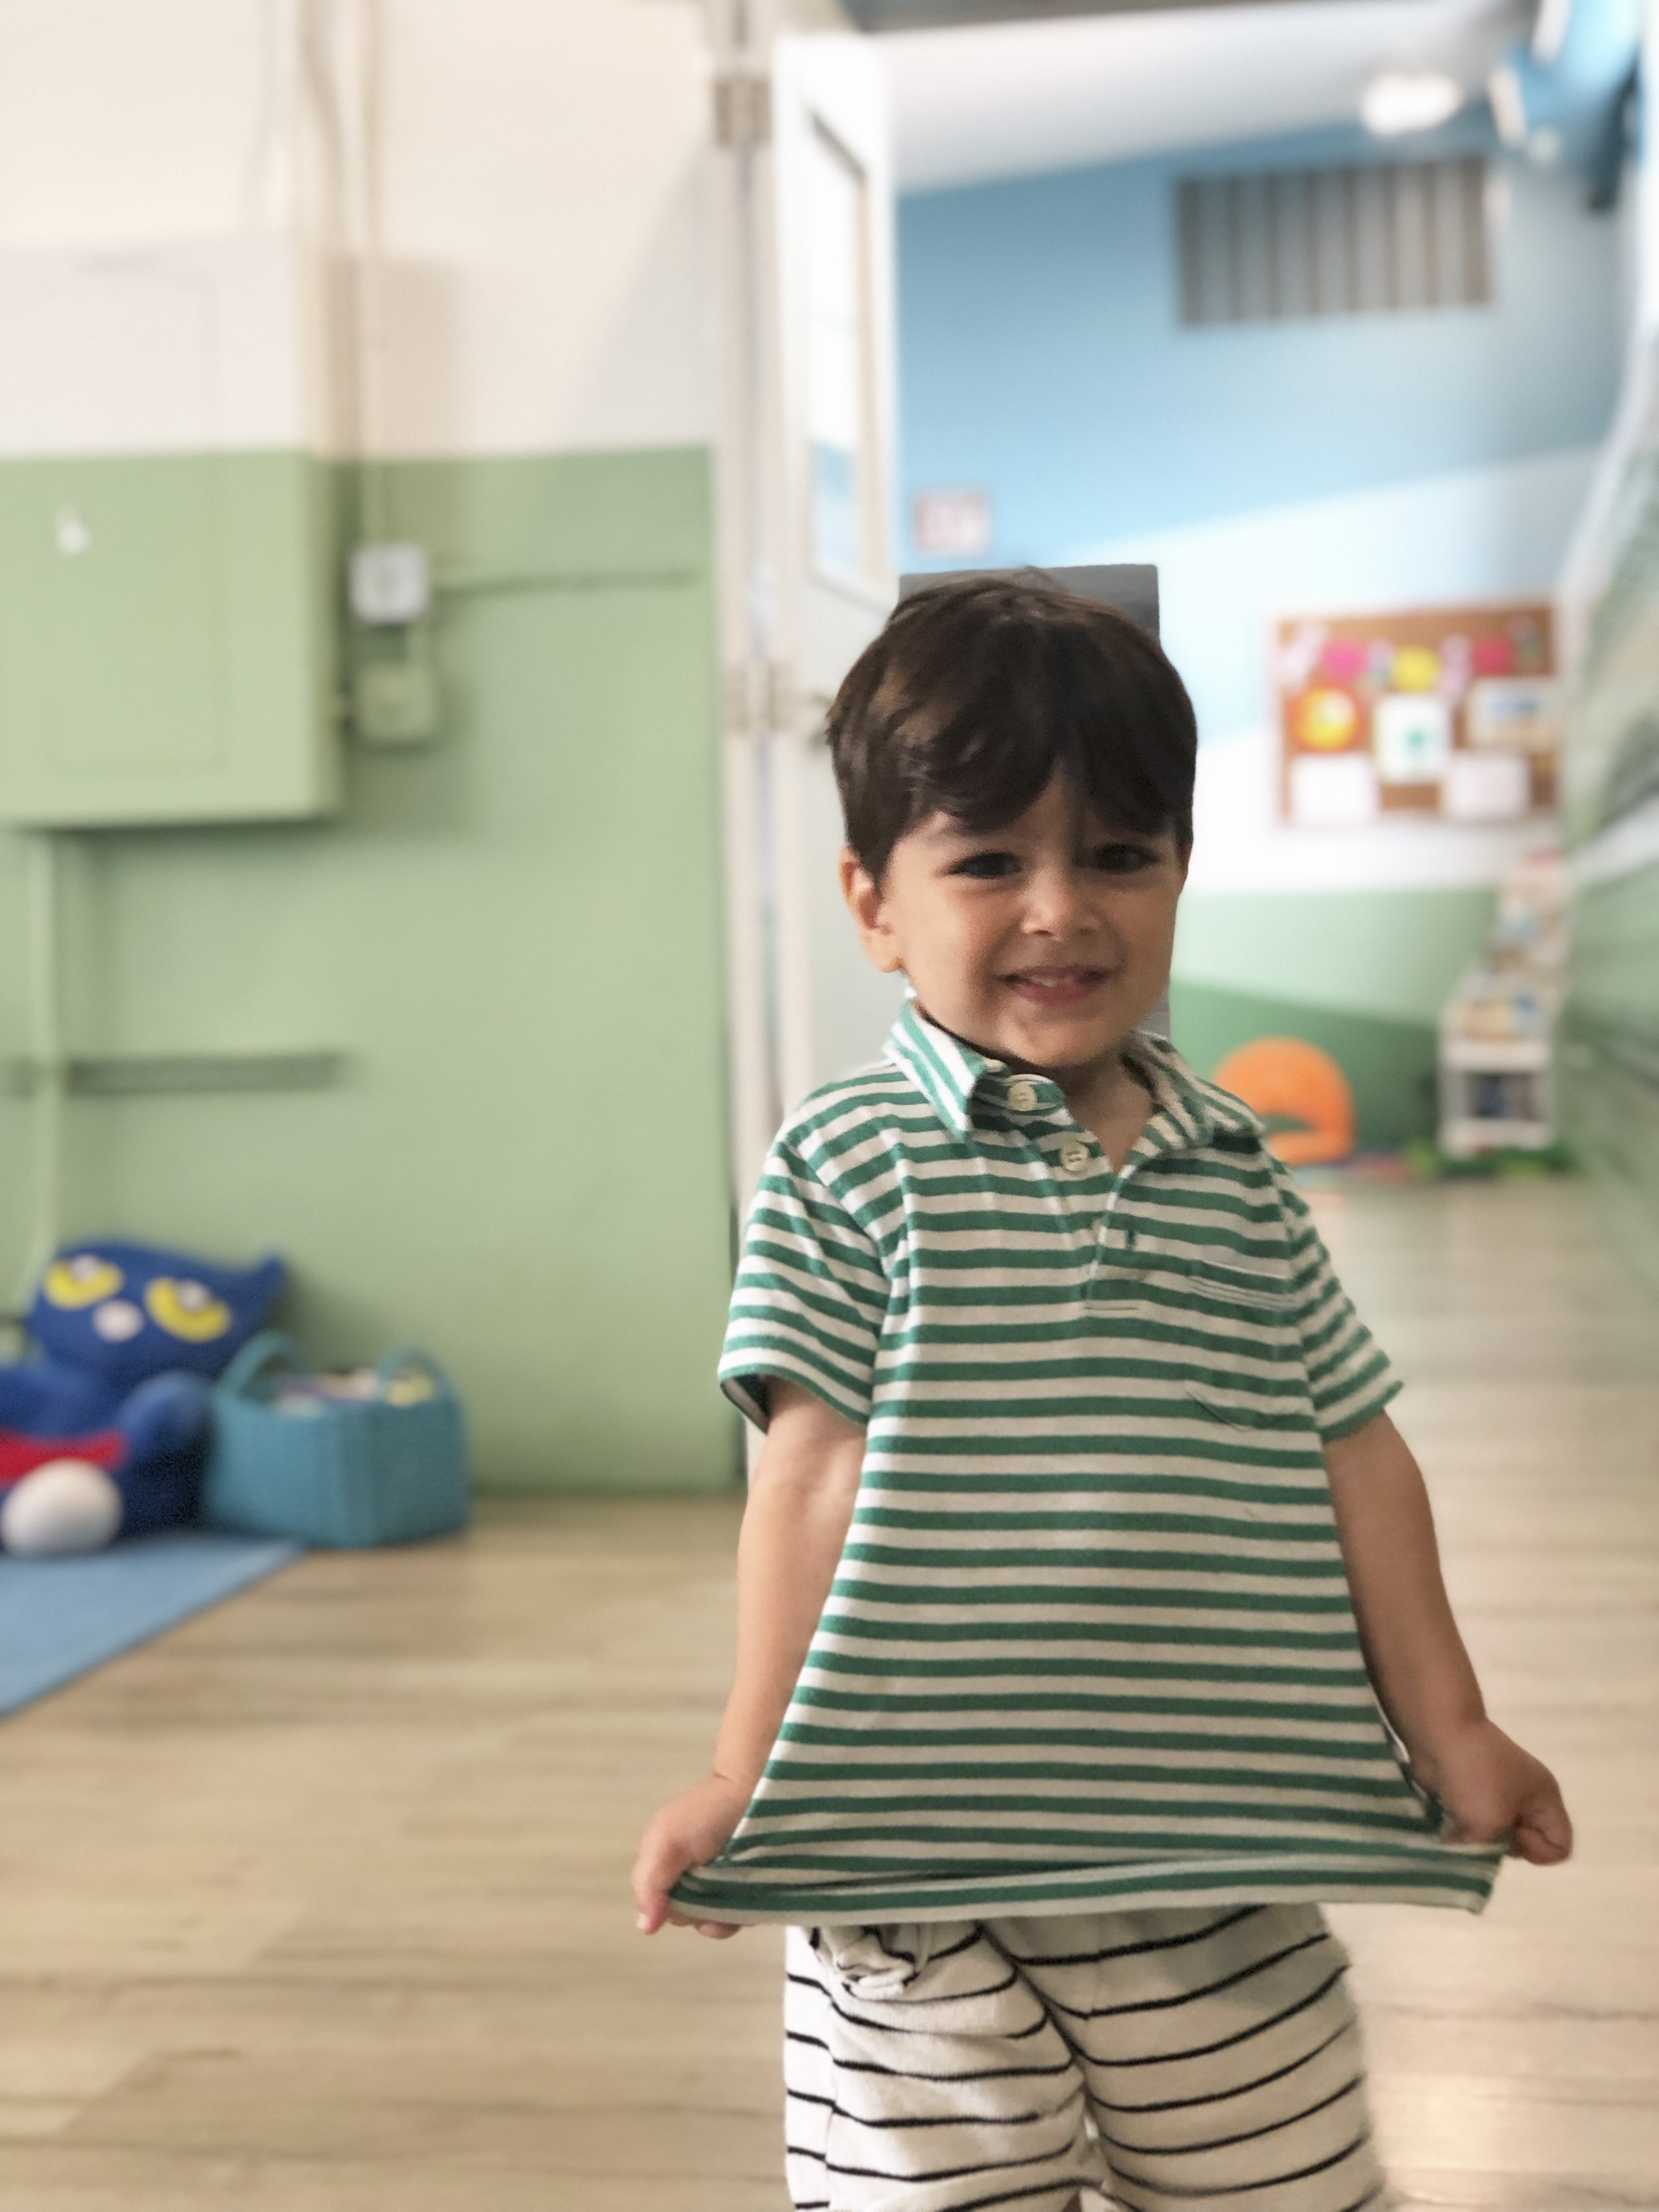 Ryan, son of Land of Mom founder El Abad, smiling and stretching his green and white striped polo shirt.